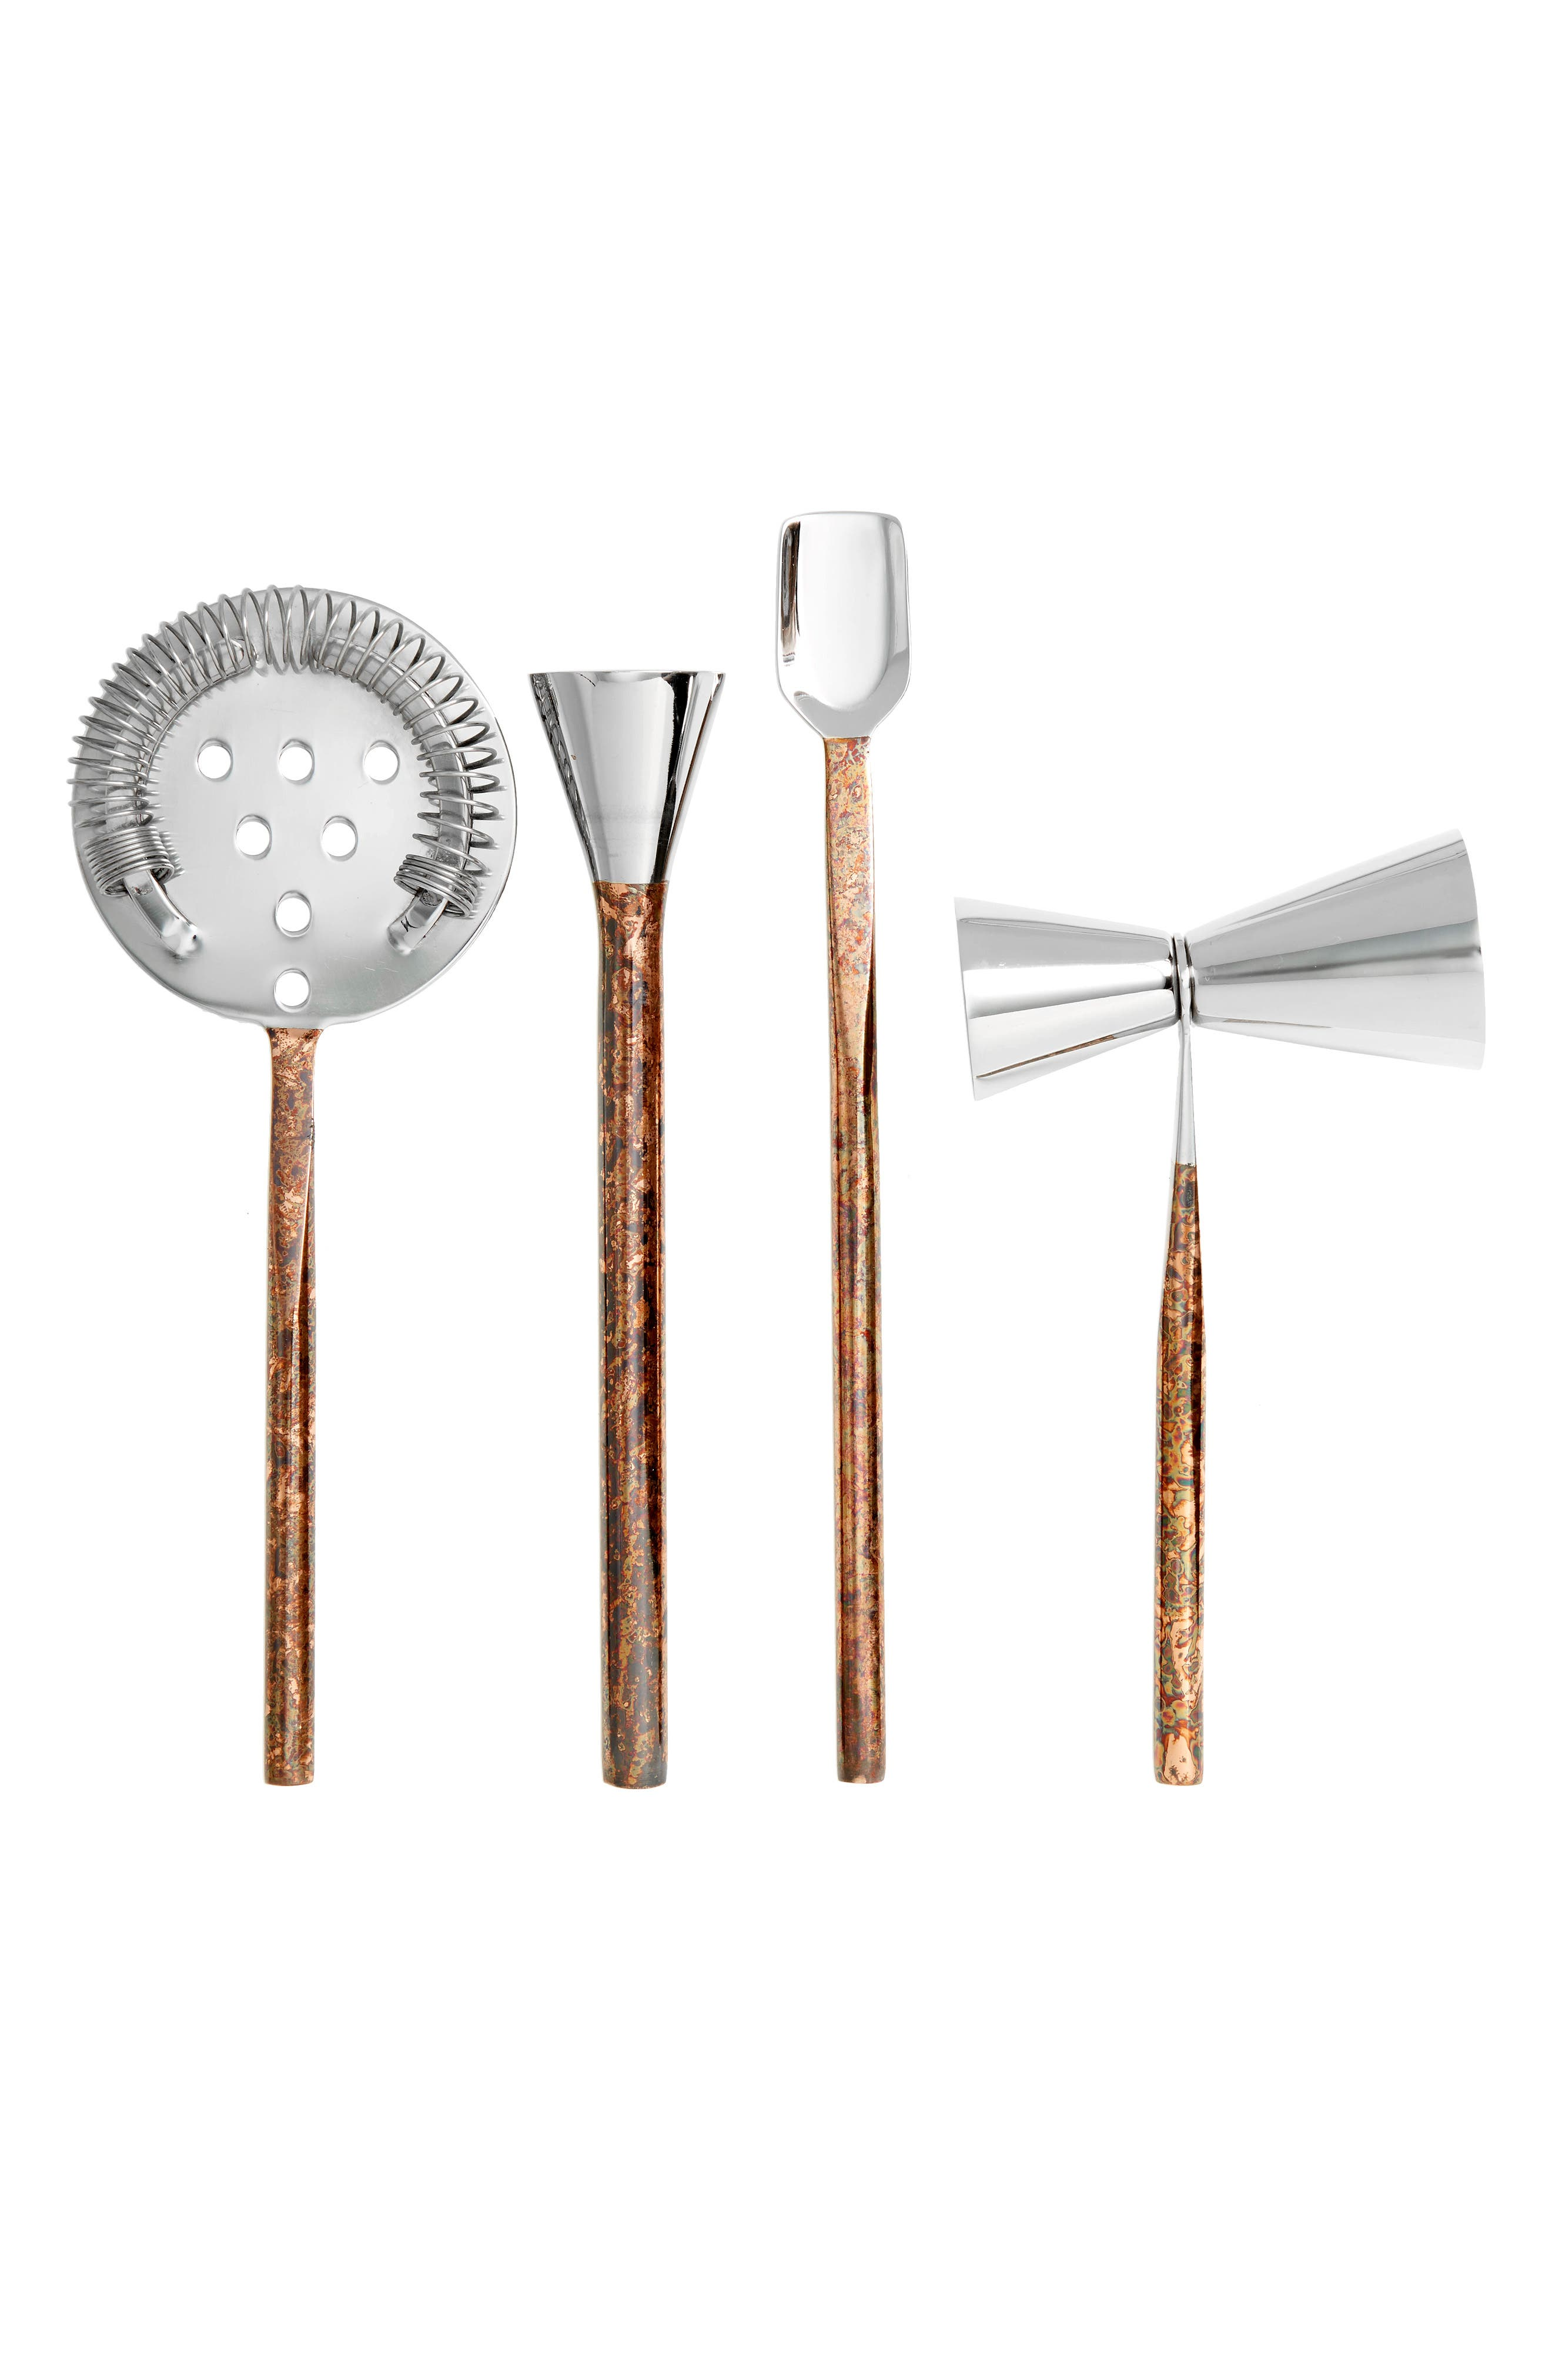 4-Piece Distressed Copper & Stainless Steel Bar Set,                             Main thumbnail 1, color,                             Brushed Copper